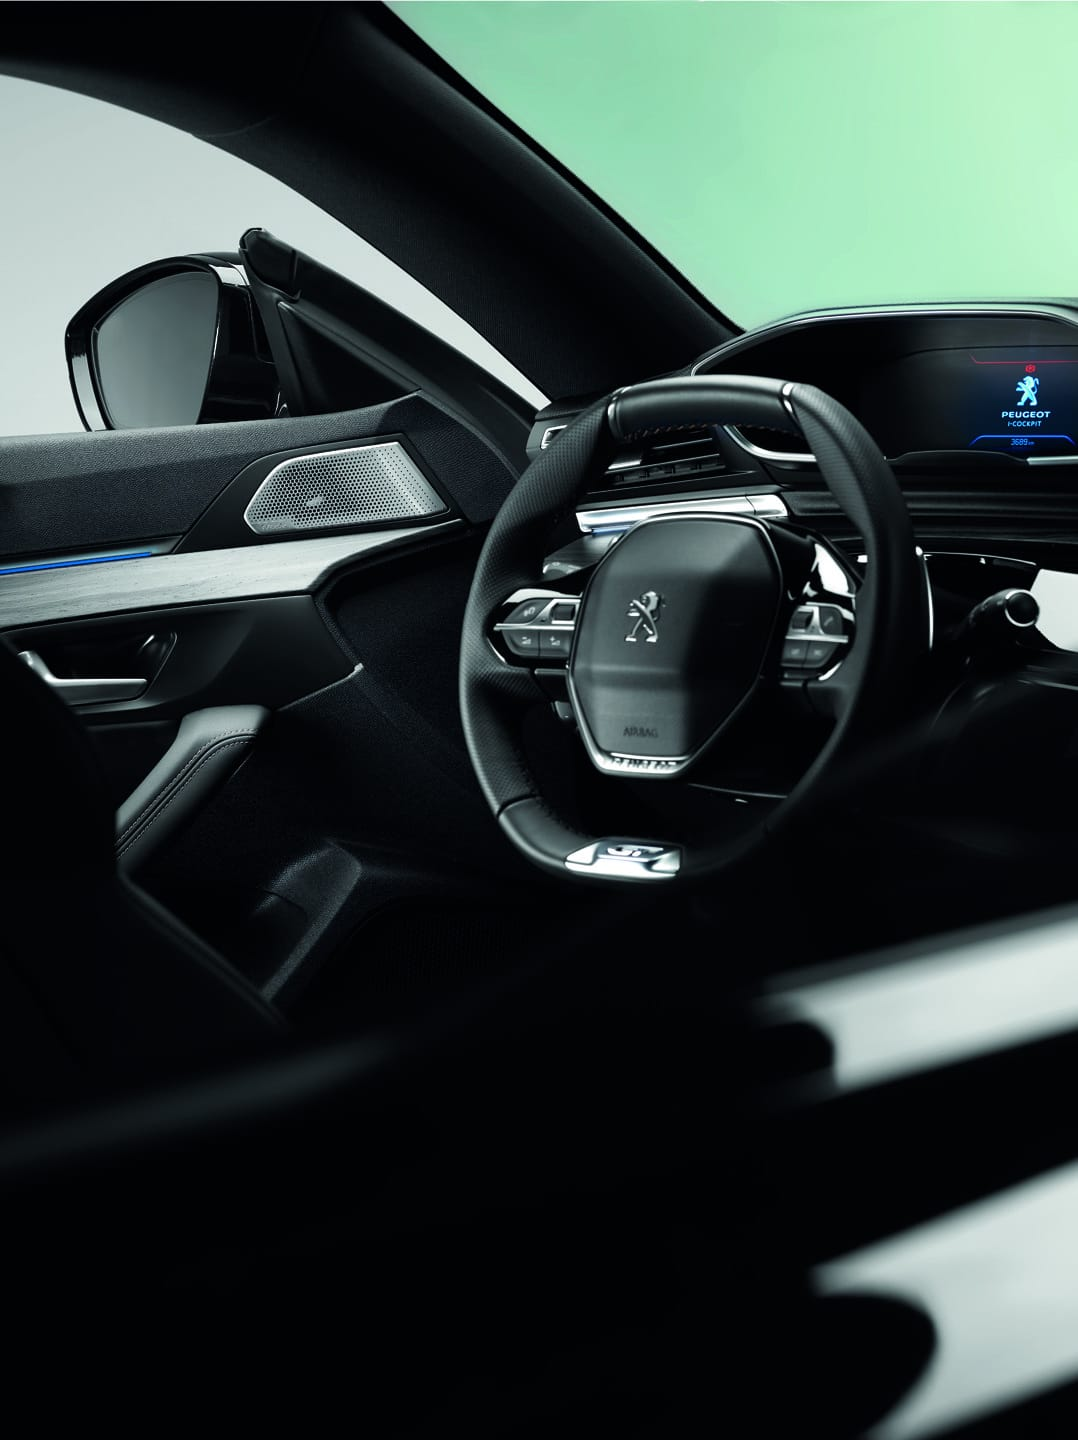 Peugeot Focal Audio systems 2